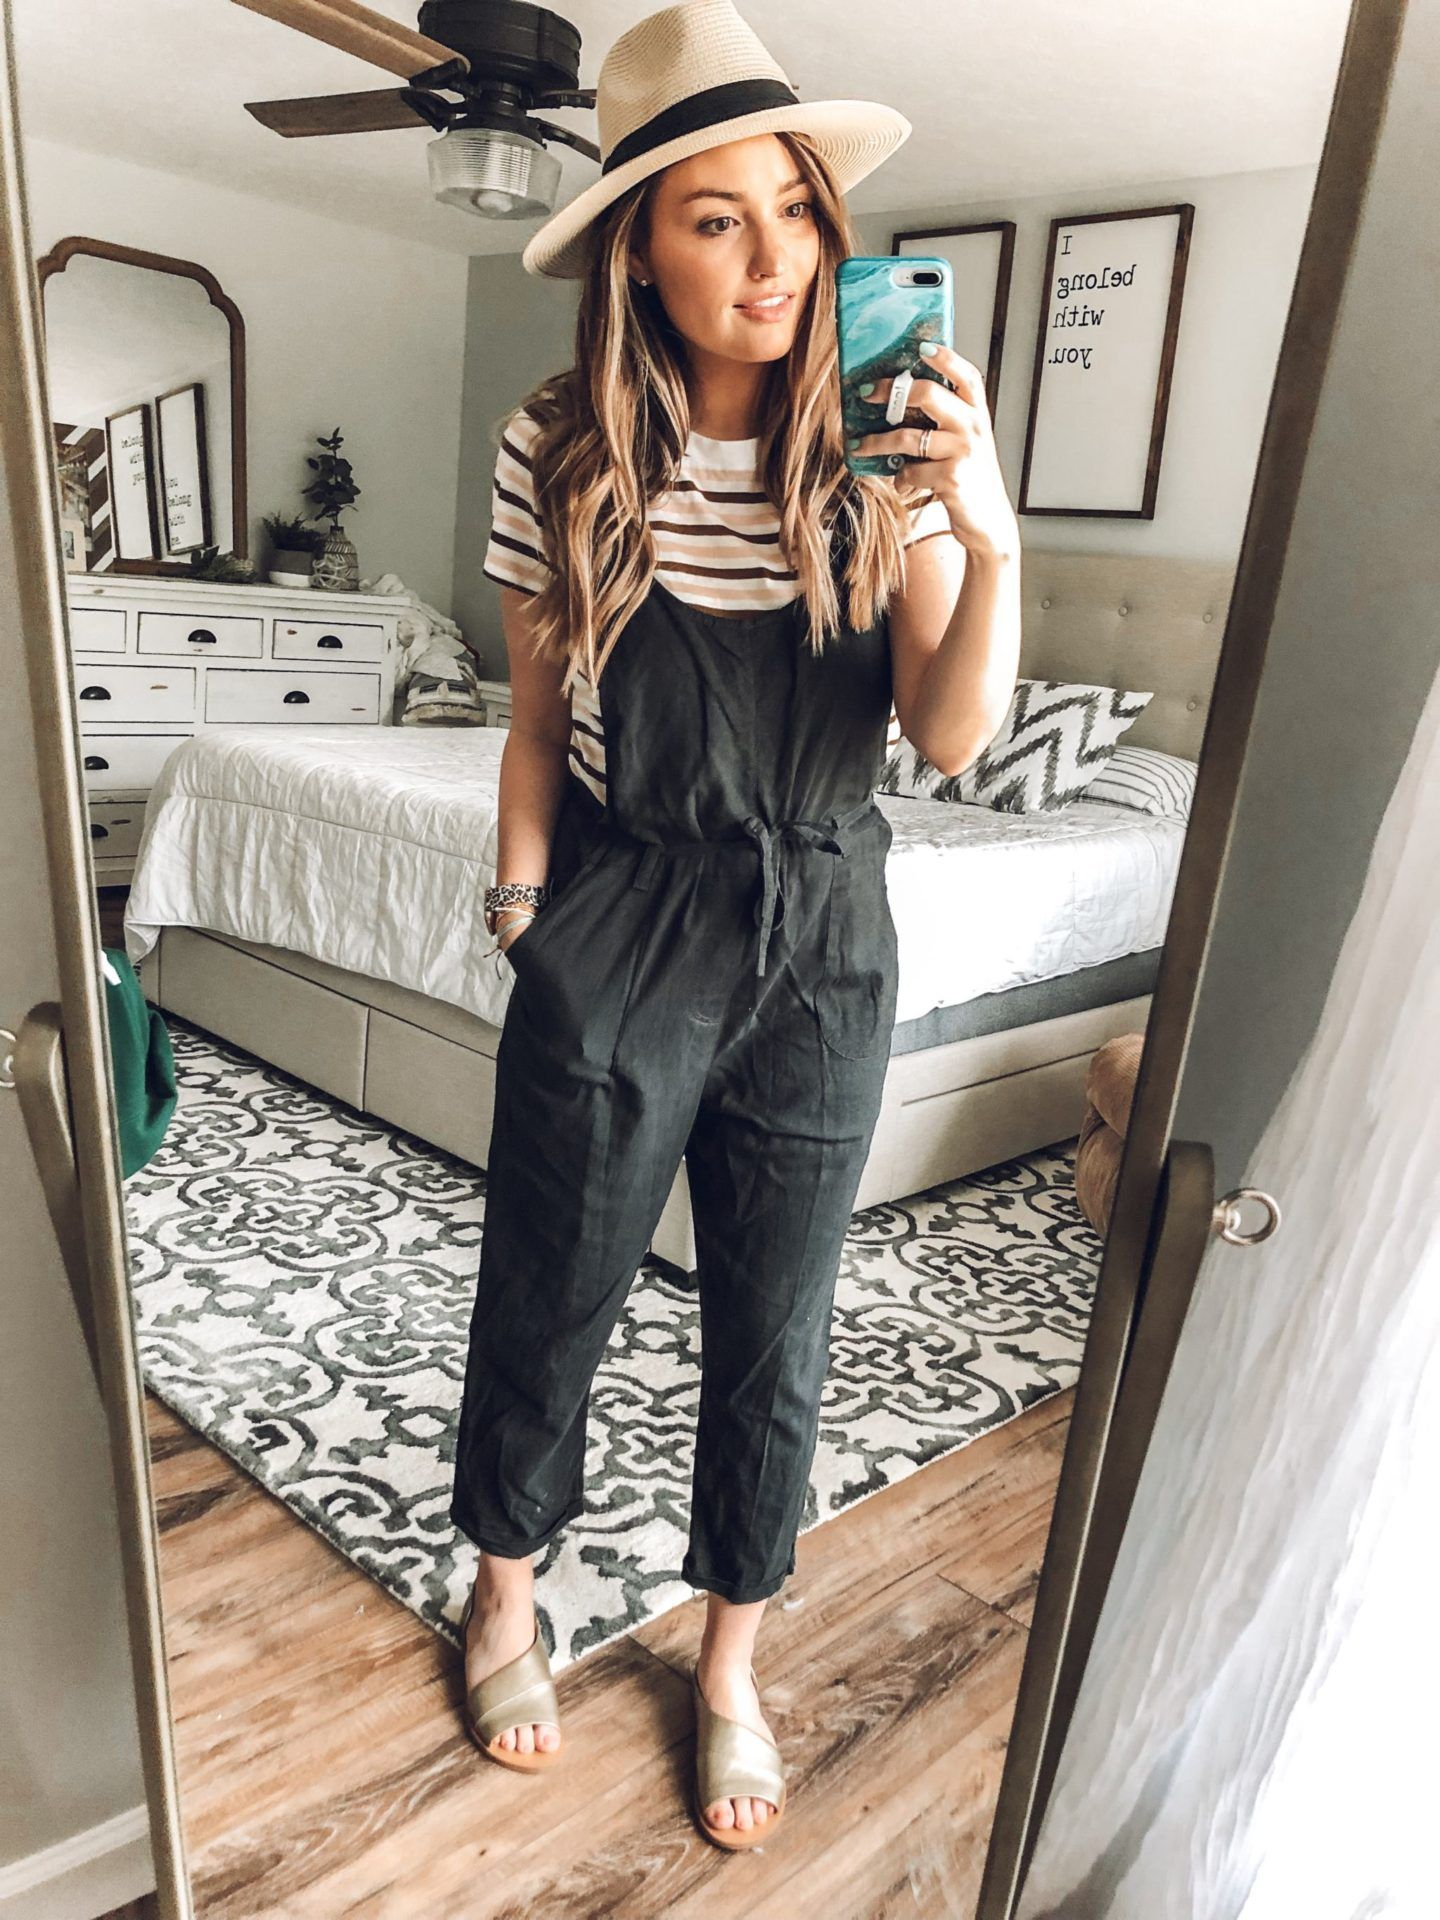 Jumpsuit Target Clothes Cute Target Outfits Target Outfits Summer [ 1920 x 1440 Pixel ]